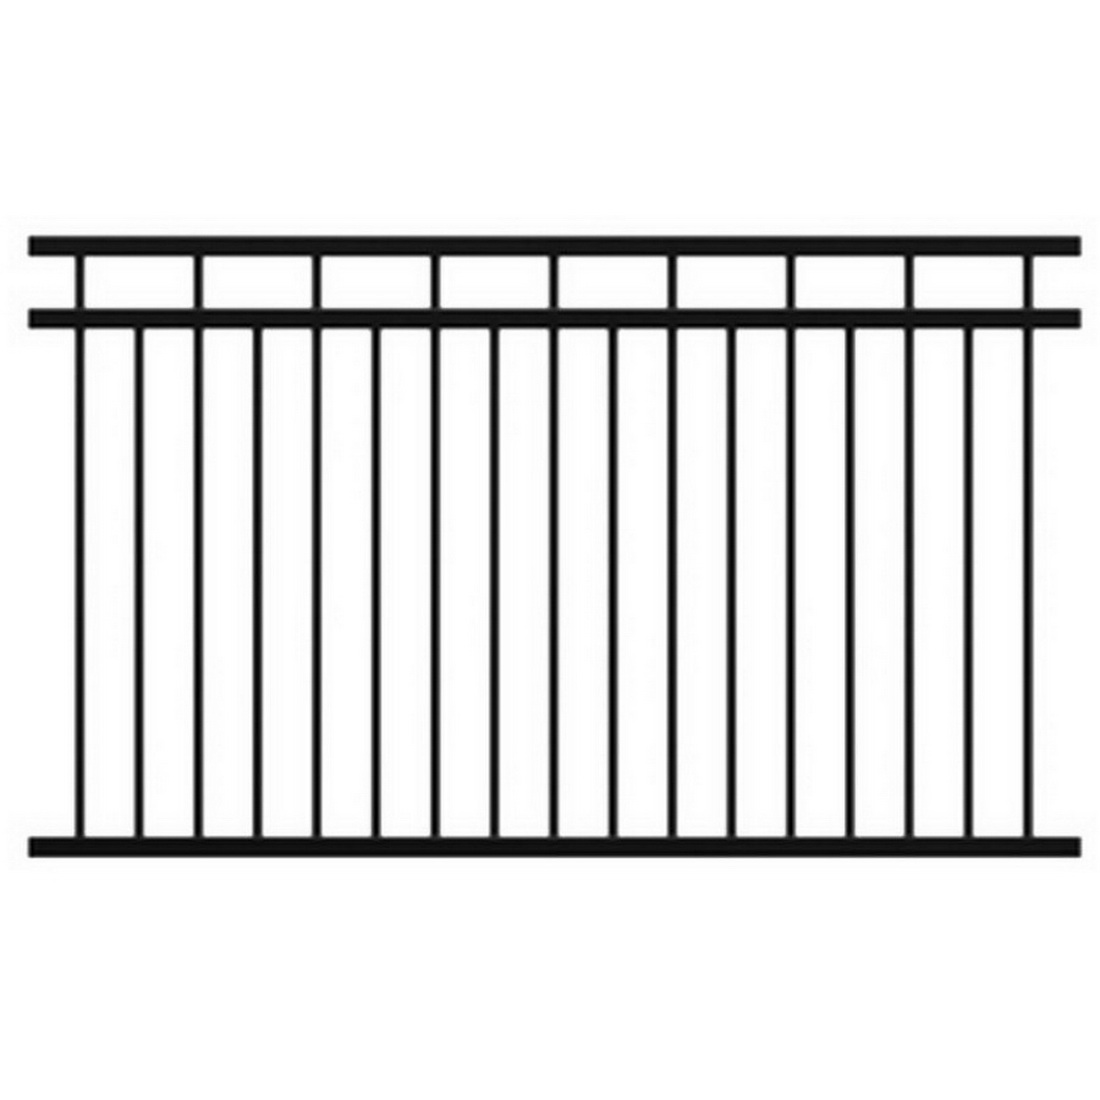 Mansion 1800H Fencing Panel 1800 x 2250mm Powder Coat Aluminum FAMFP1822